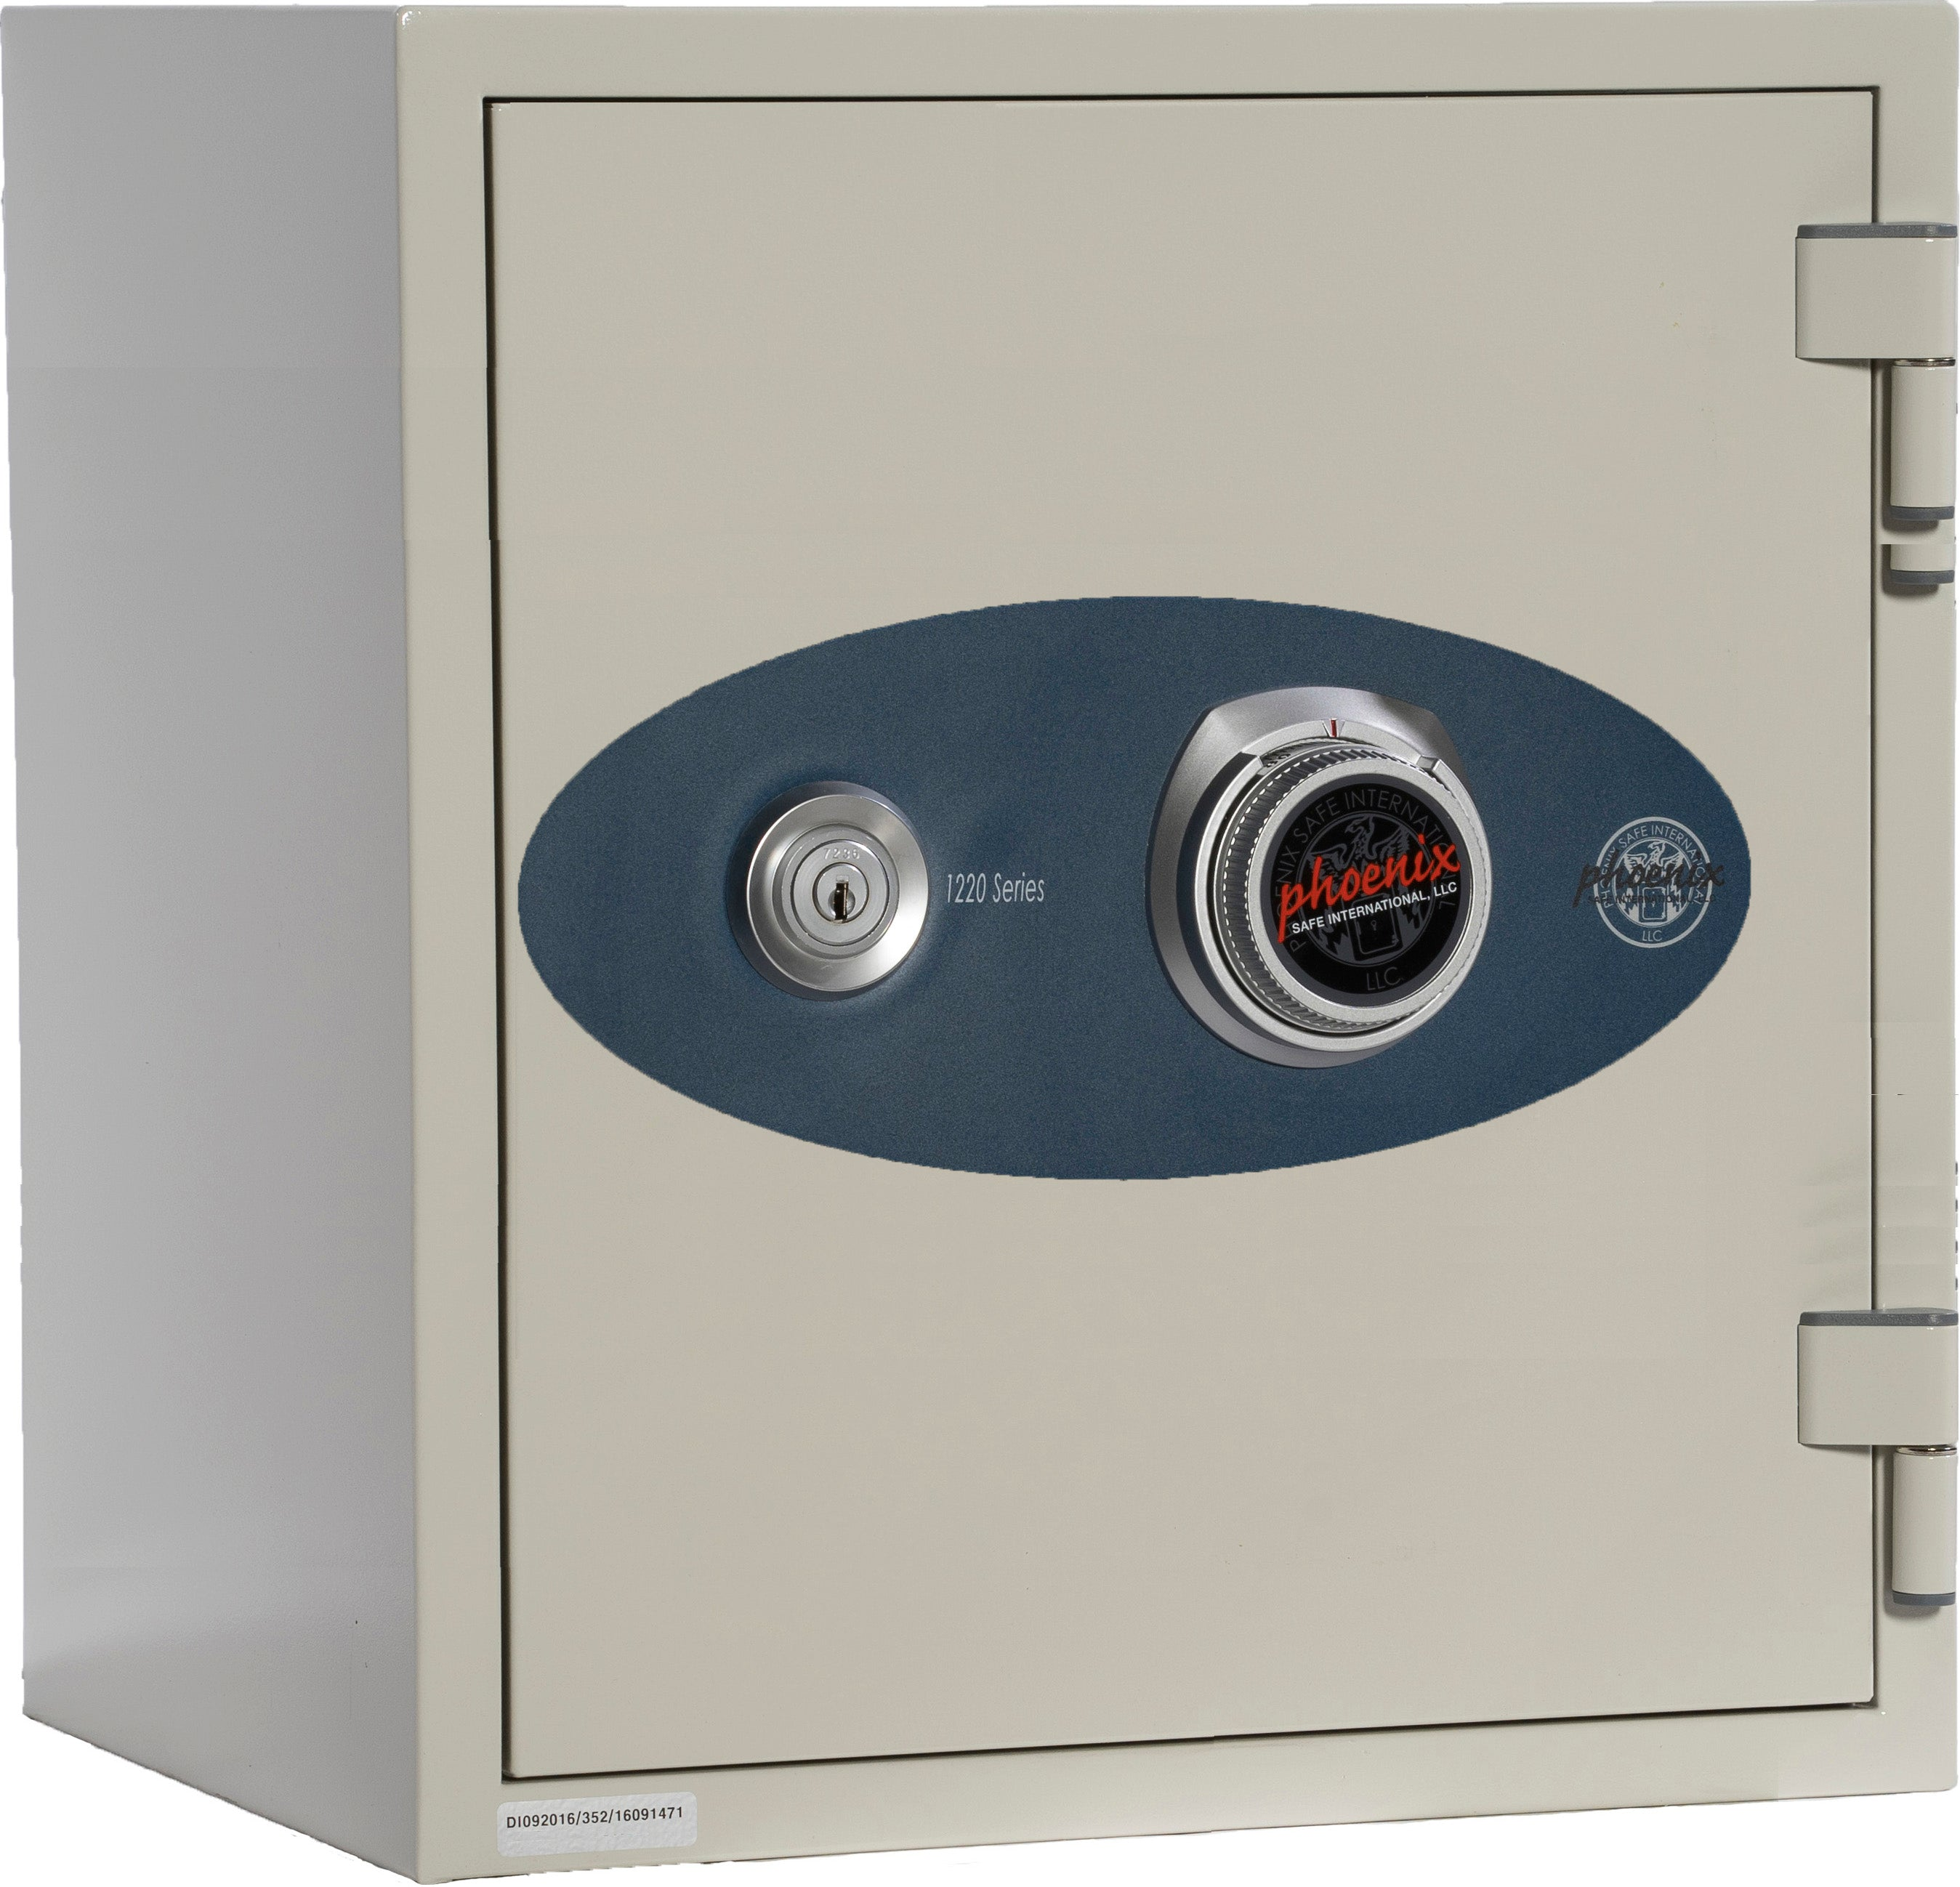 Olympian Key & Combination Dual Control Fire Resistant Safe 0.87 cu ft